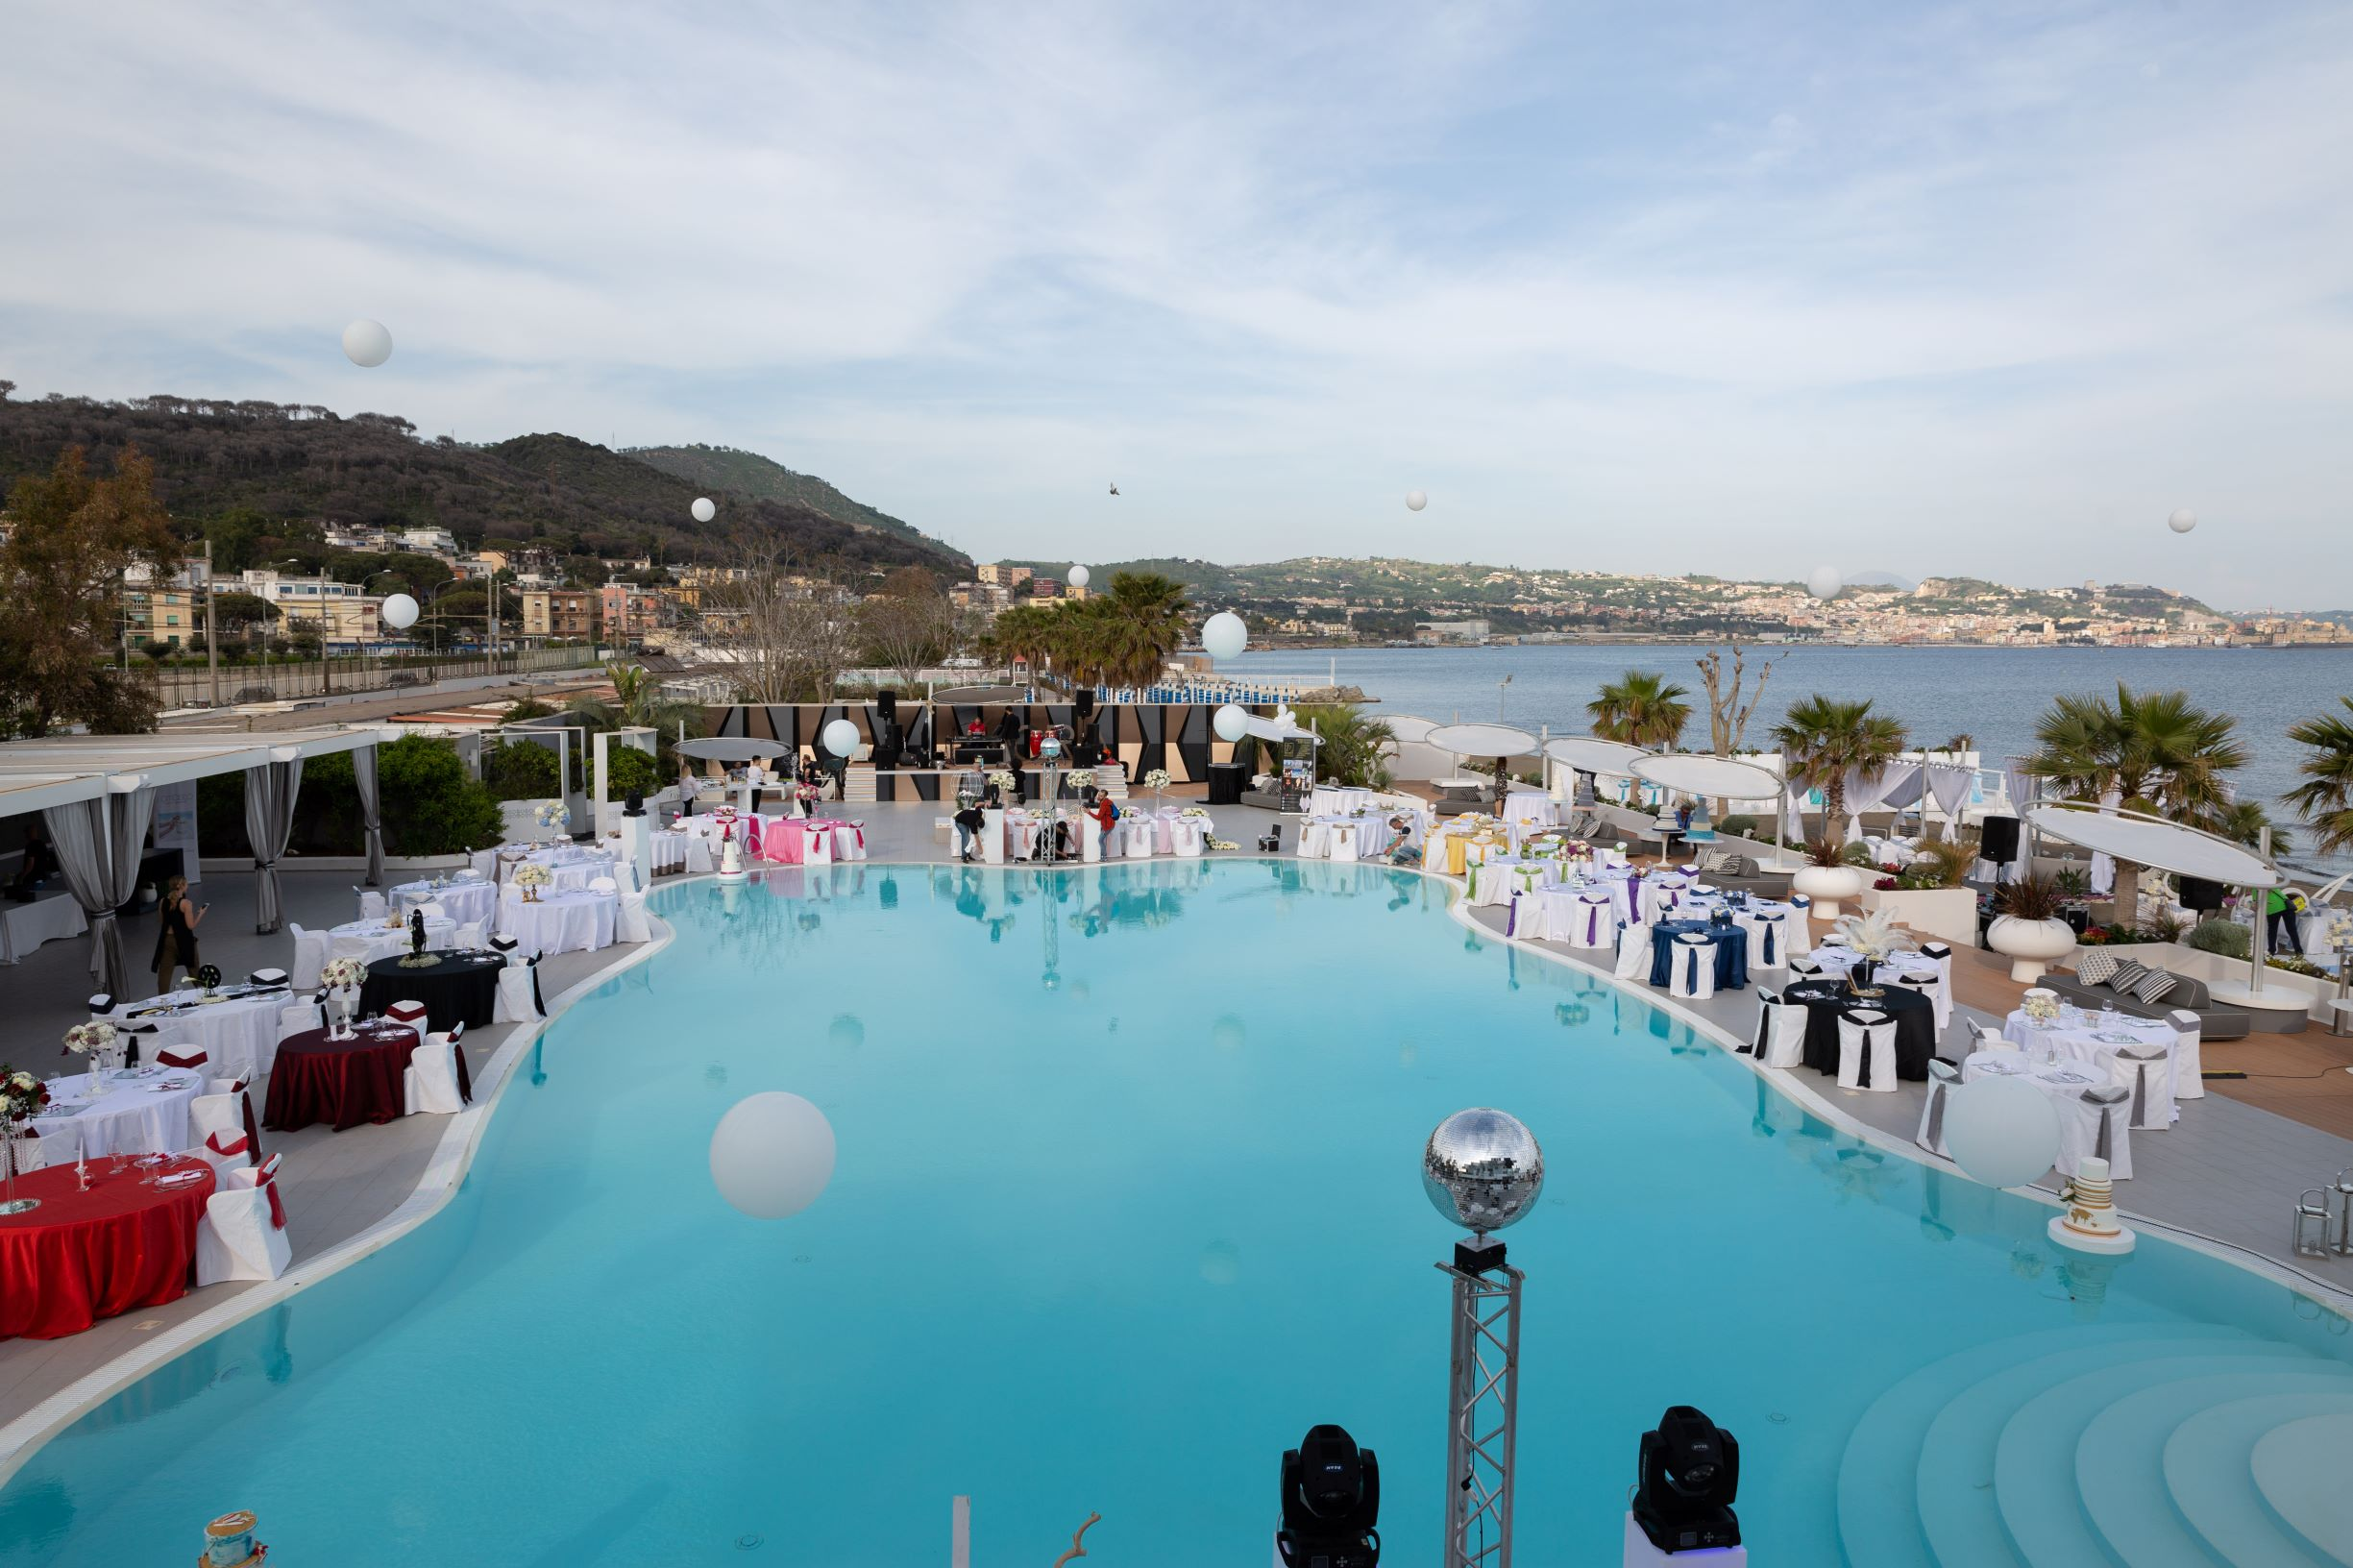 Matrimonio Spiaggia Pozzuoli : Kora pool and beach events pozzuoli napoli